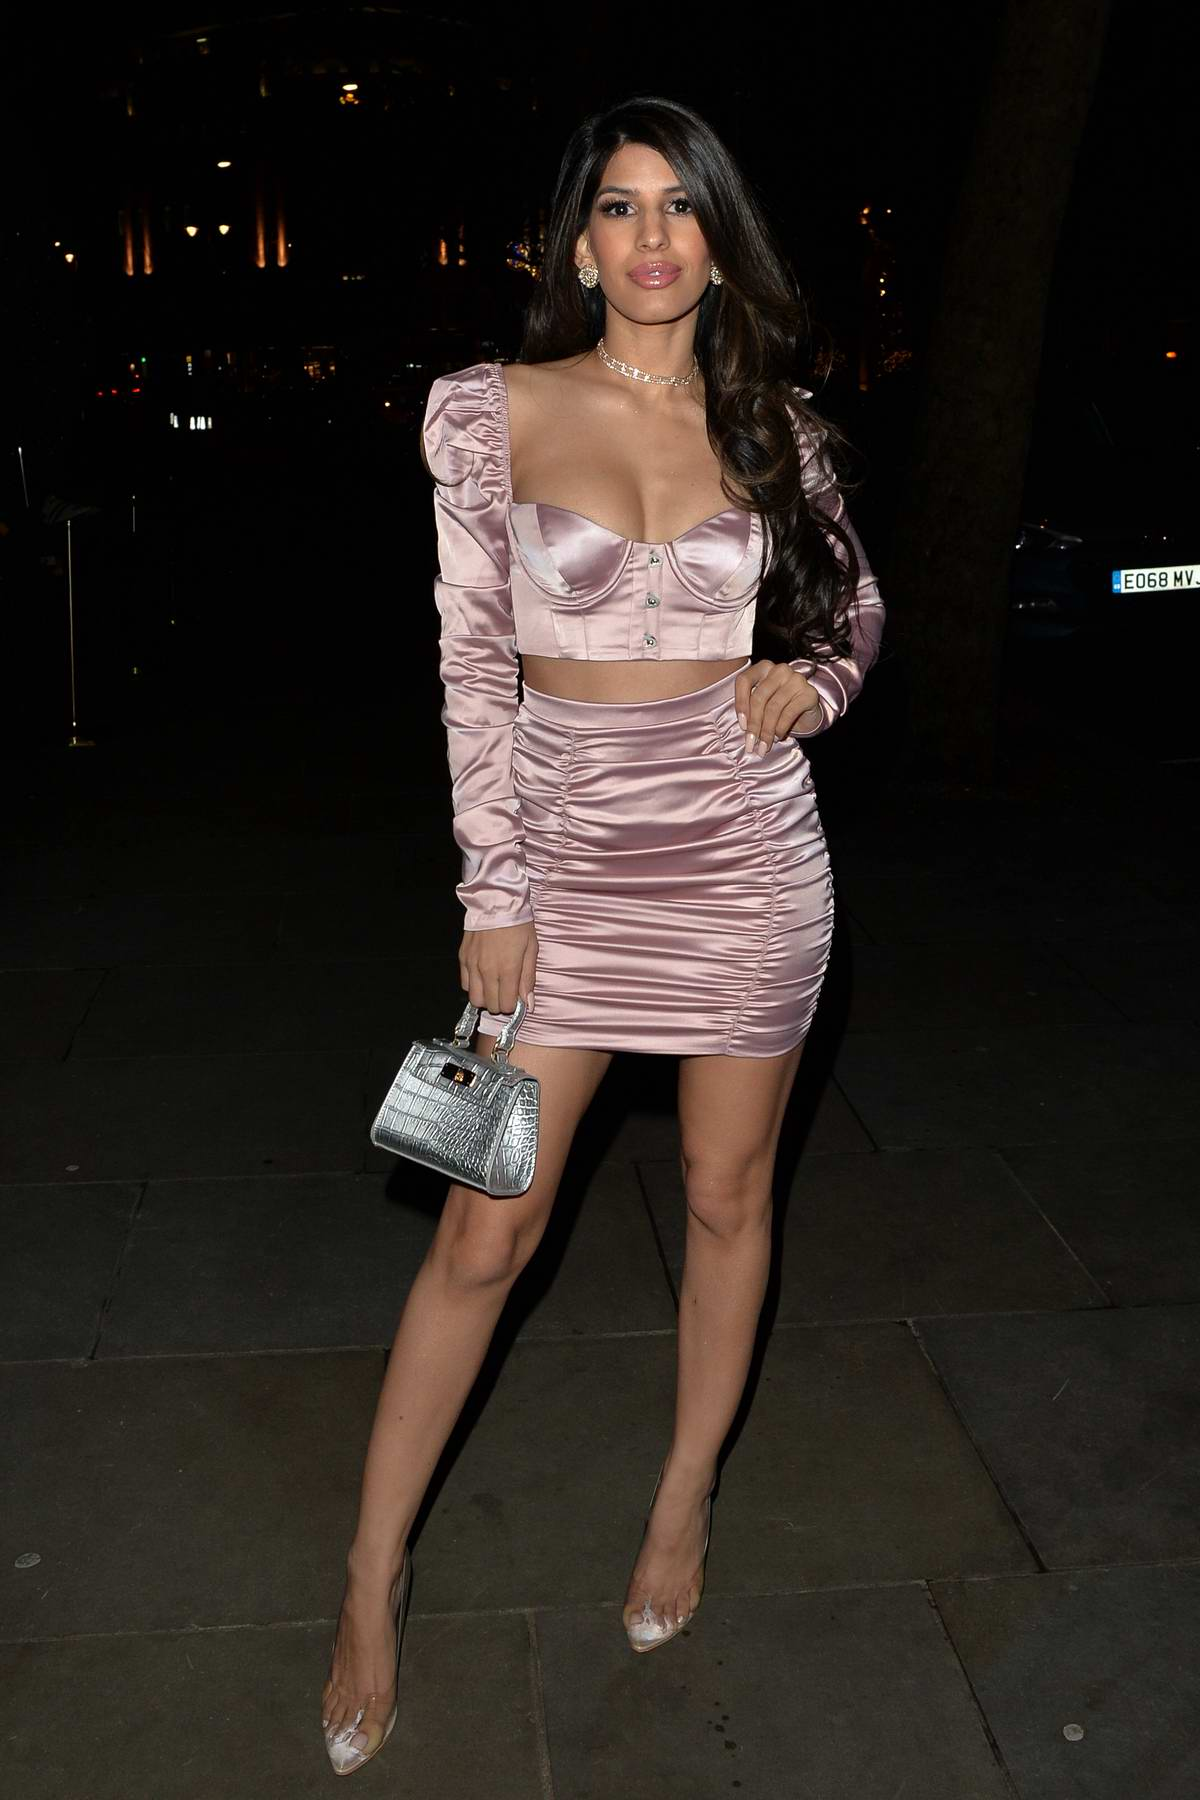 Jasmin Walia seen wearing two-piece light pink mini dress during a night out at Radio bar in London, UK